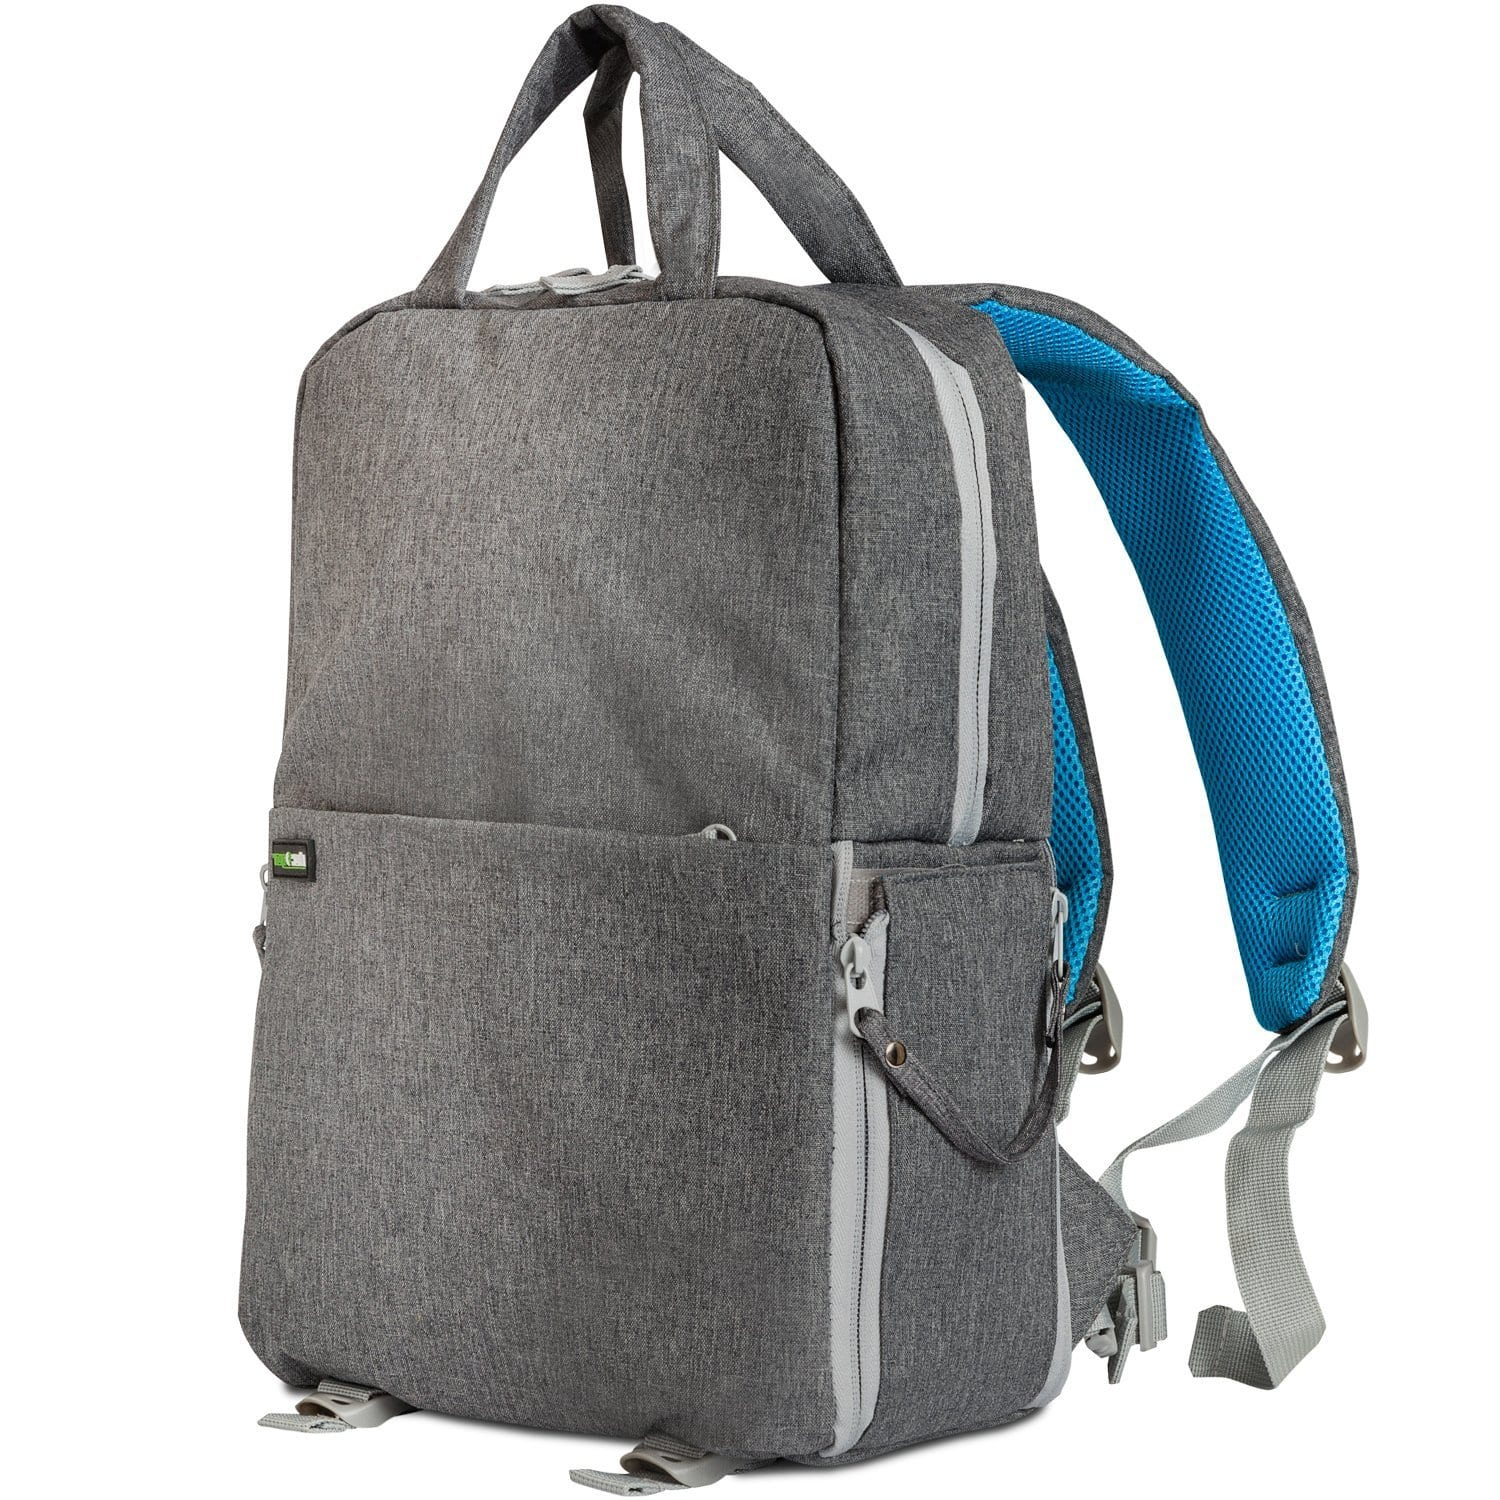 "Deco Gear Camera Backpack w/ 13"" Laptop Sleeve & Rain Cover $17.50 + free s/h"